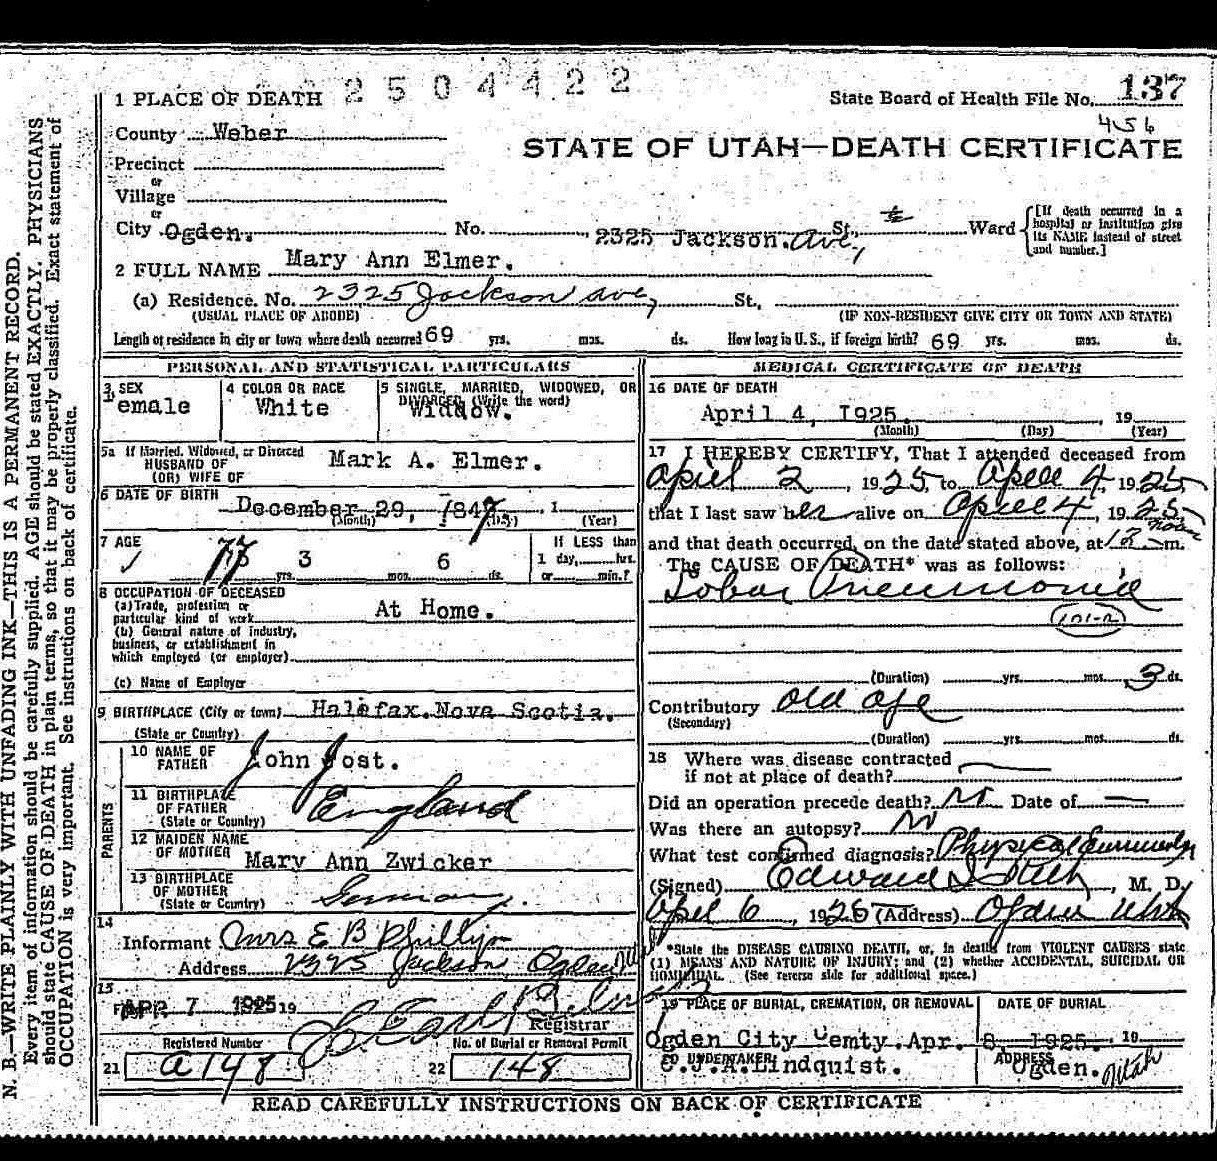 Stagge parker histories mary ann jost elmer 1847 1925 utah death certificates 1904 1956 for mary ann elmer 1betcityfo Choice Image